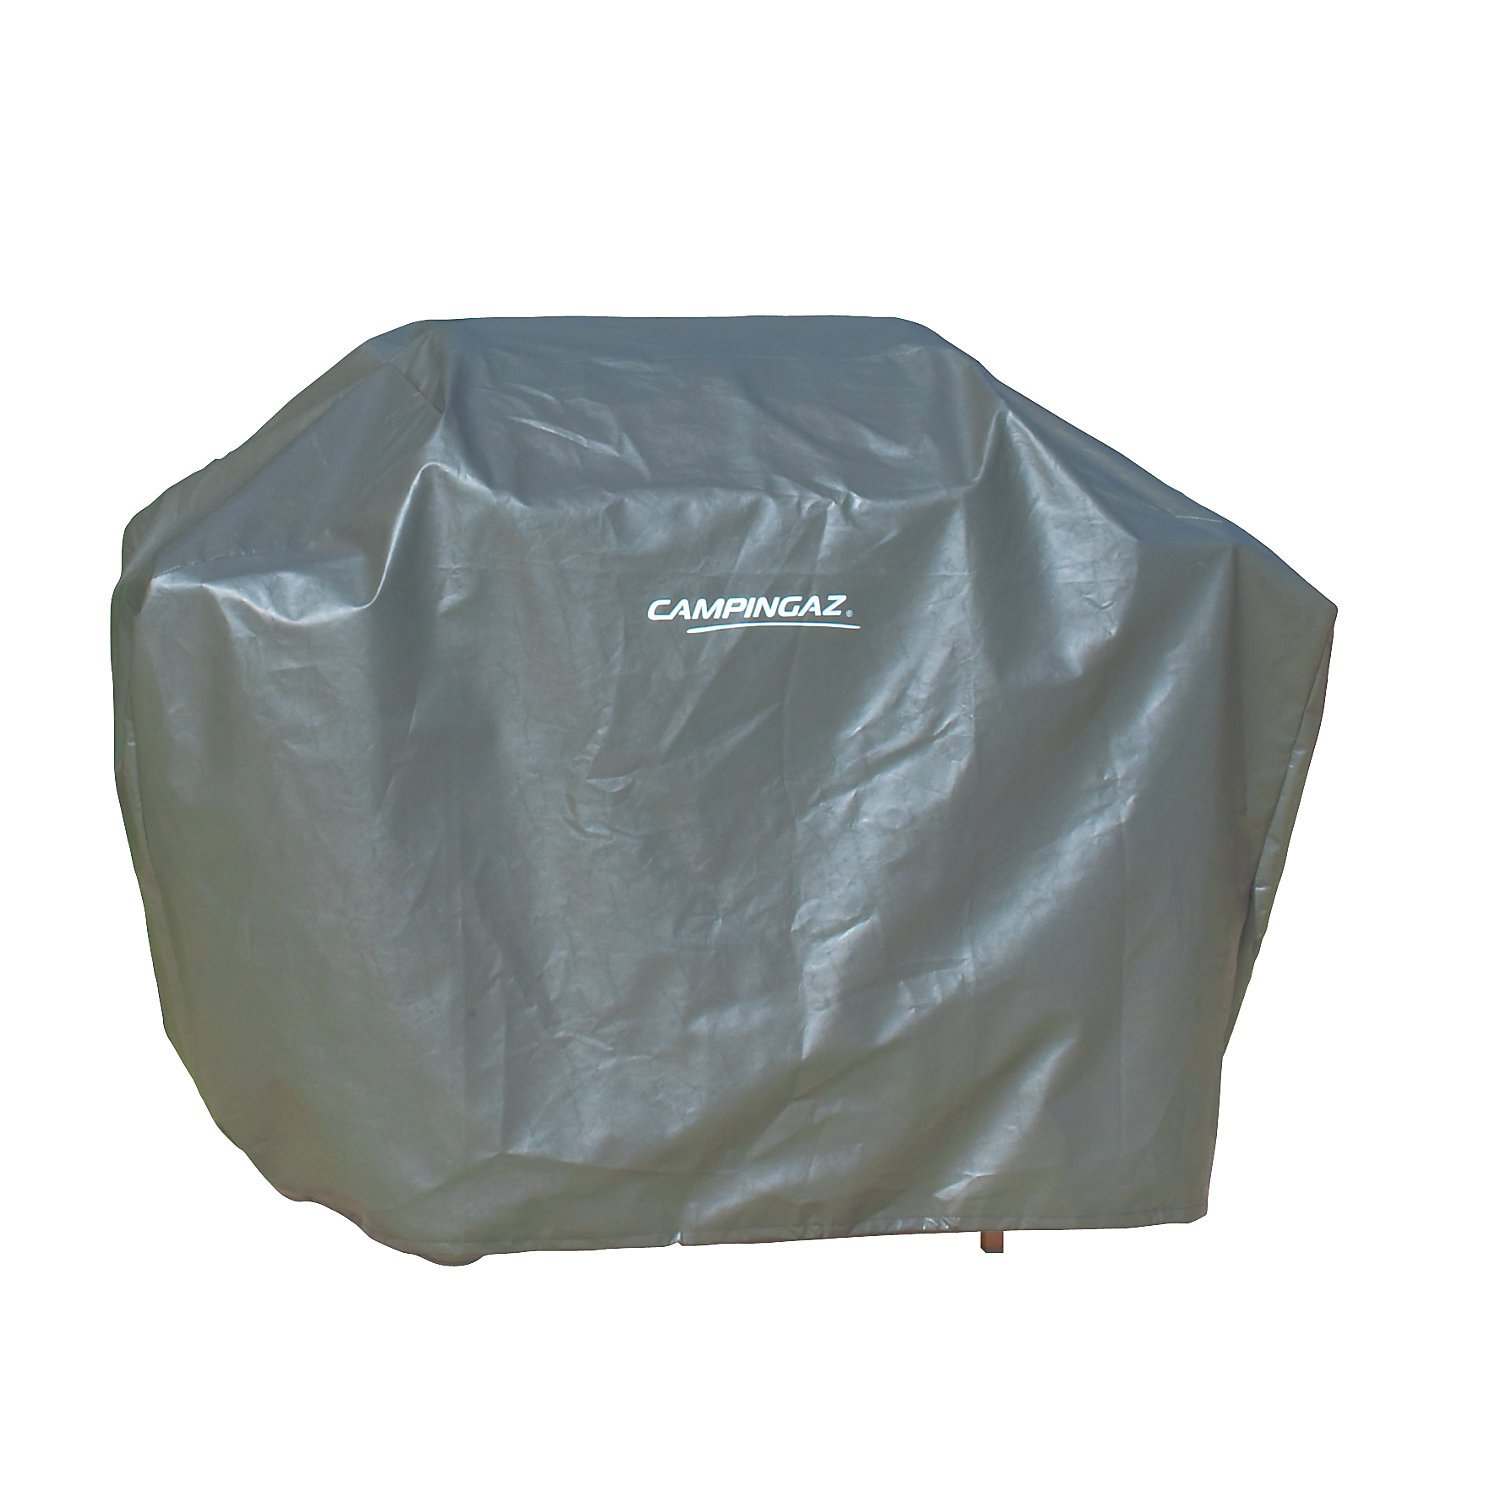 Campingaz Universal Barbecue Cover, Non-Pvc Material 2X-Large/153 x 63 x 102 cm 2000027839